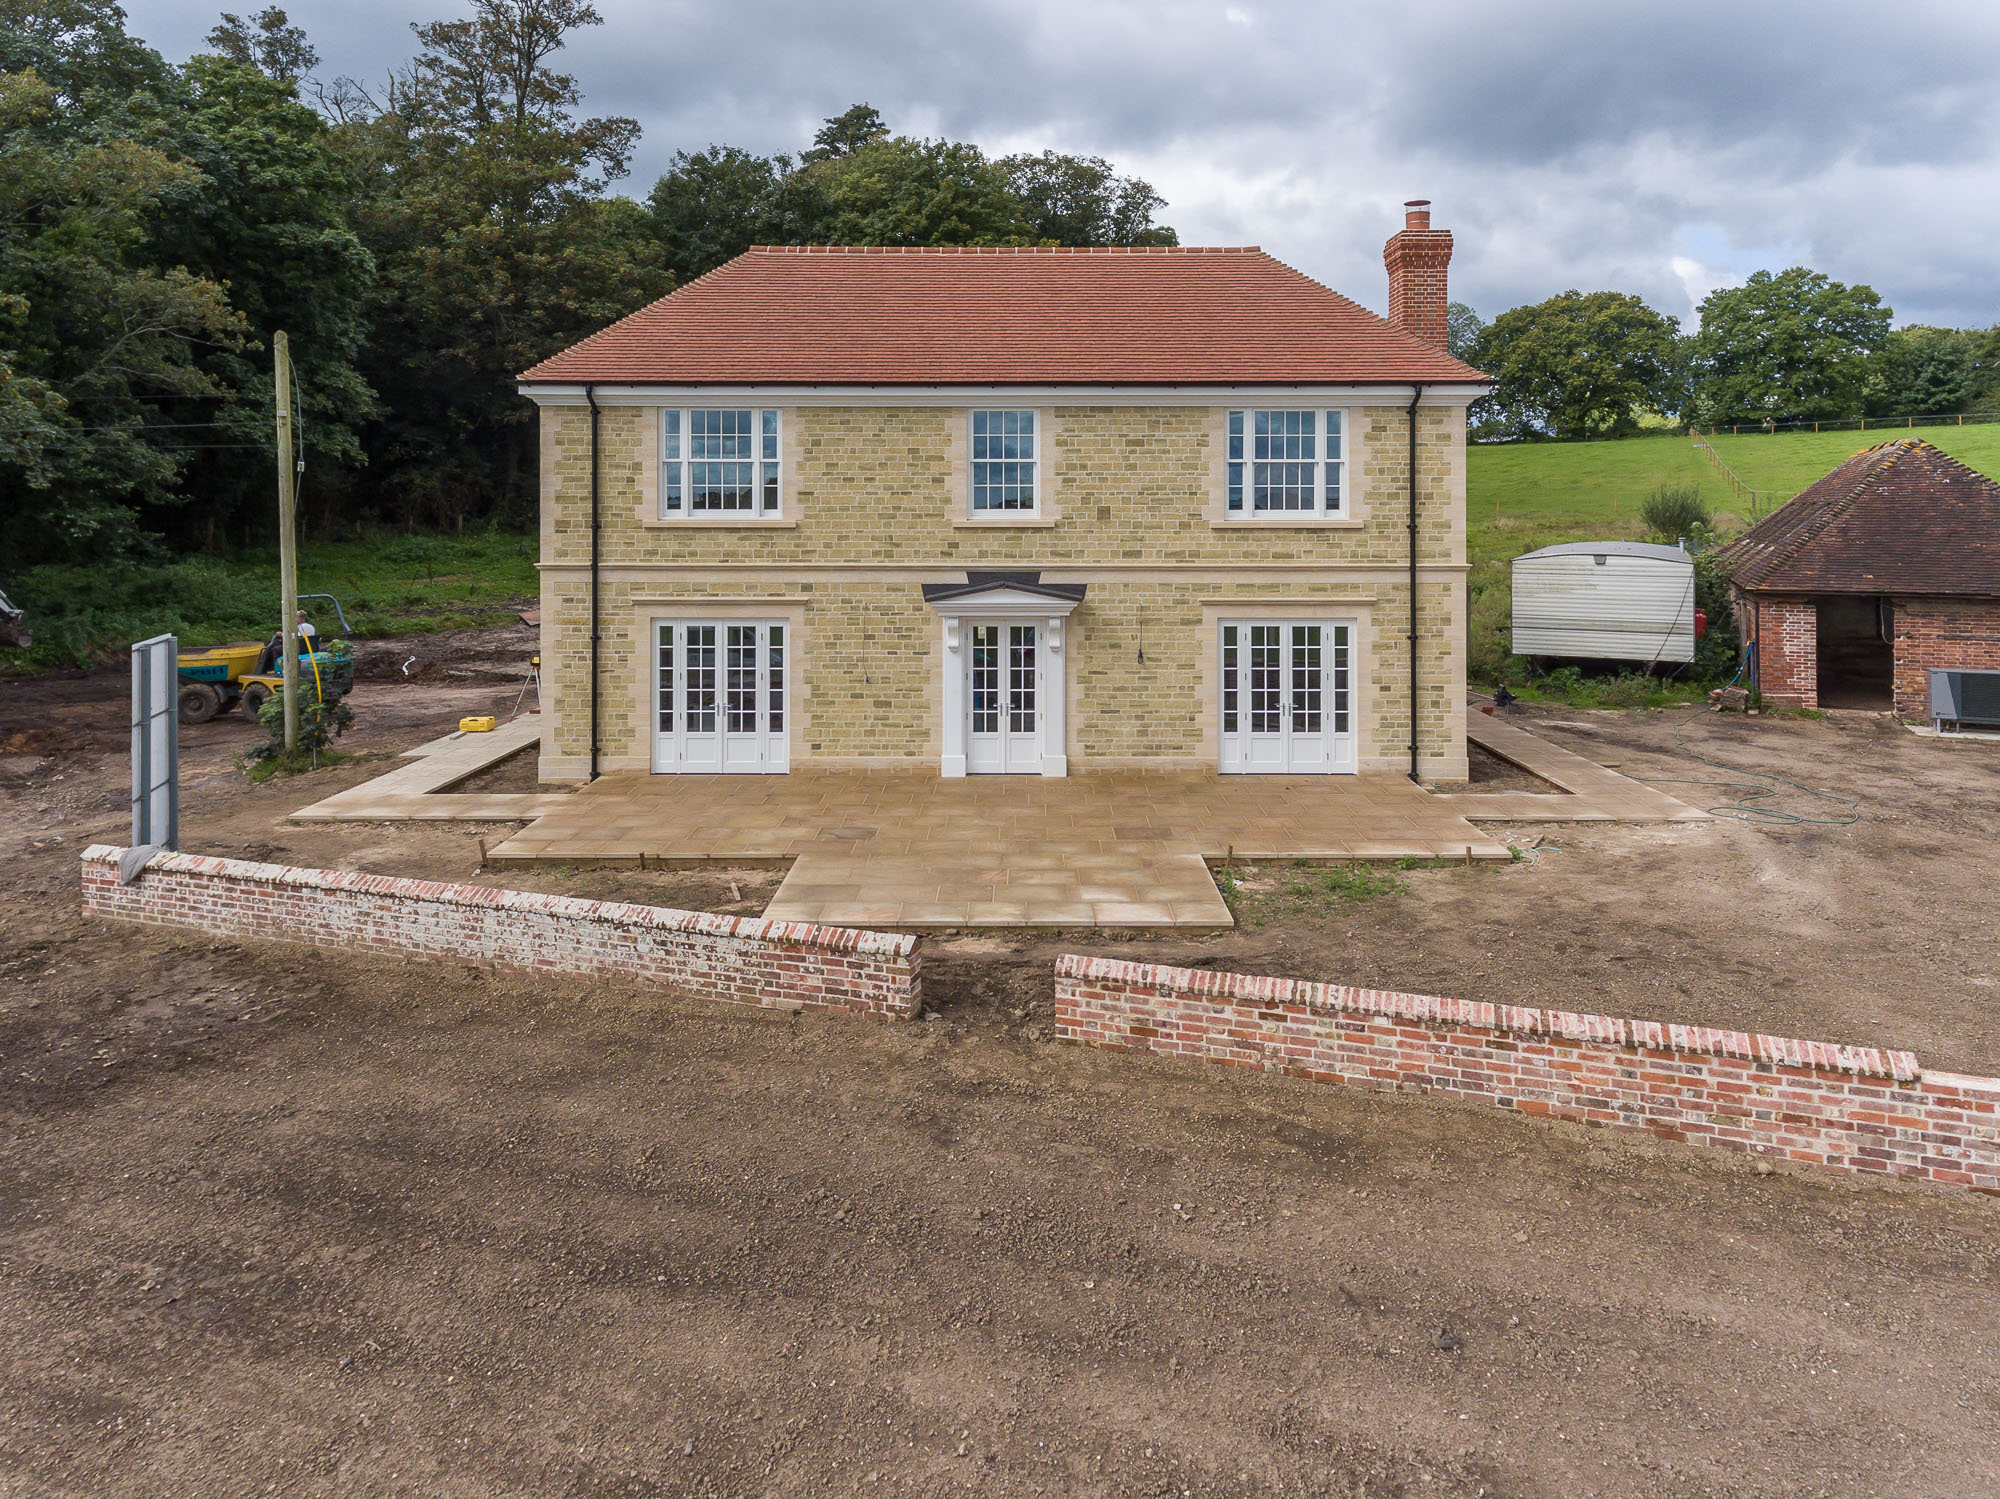 jonathan bond aerial photographer, front view of detached house using drone